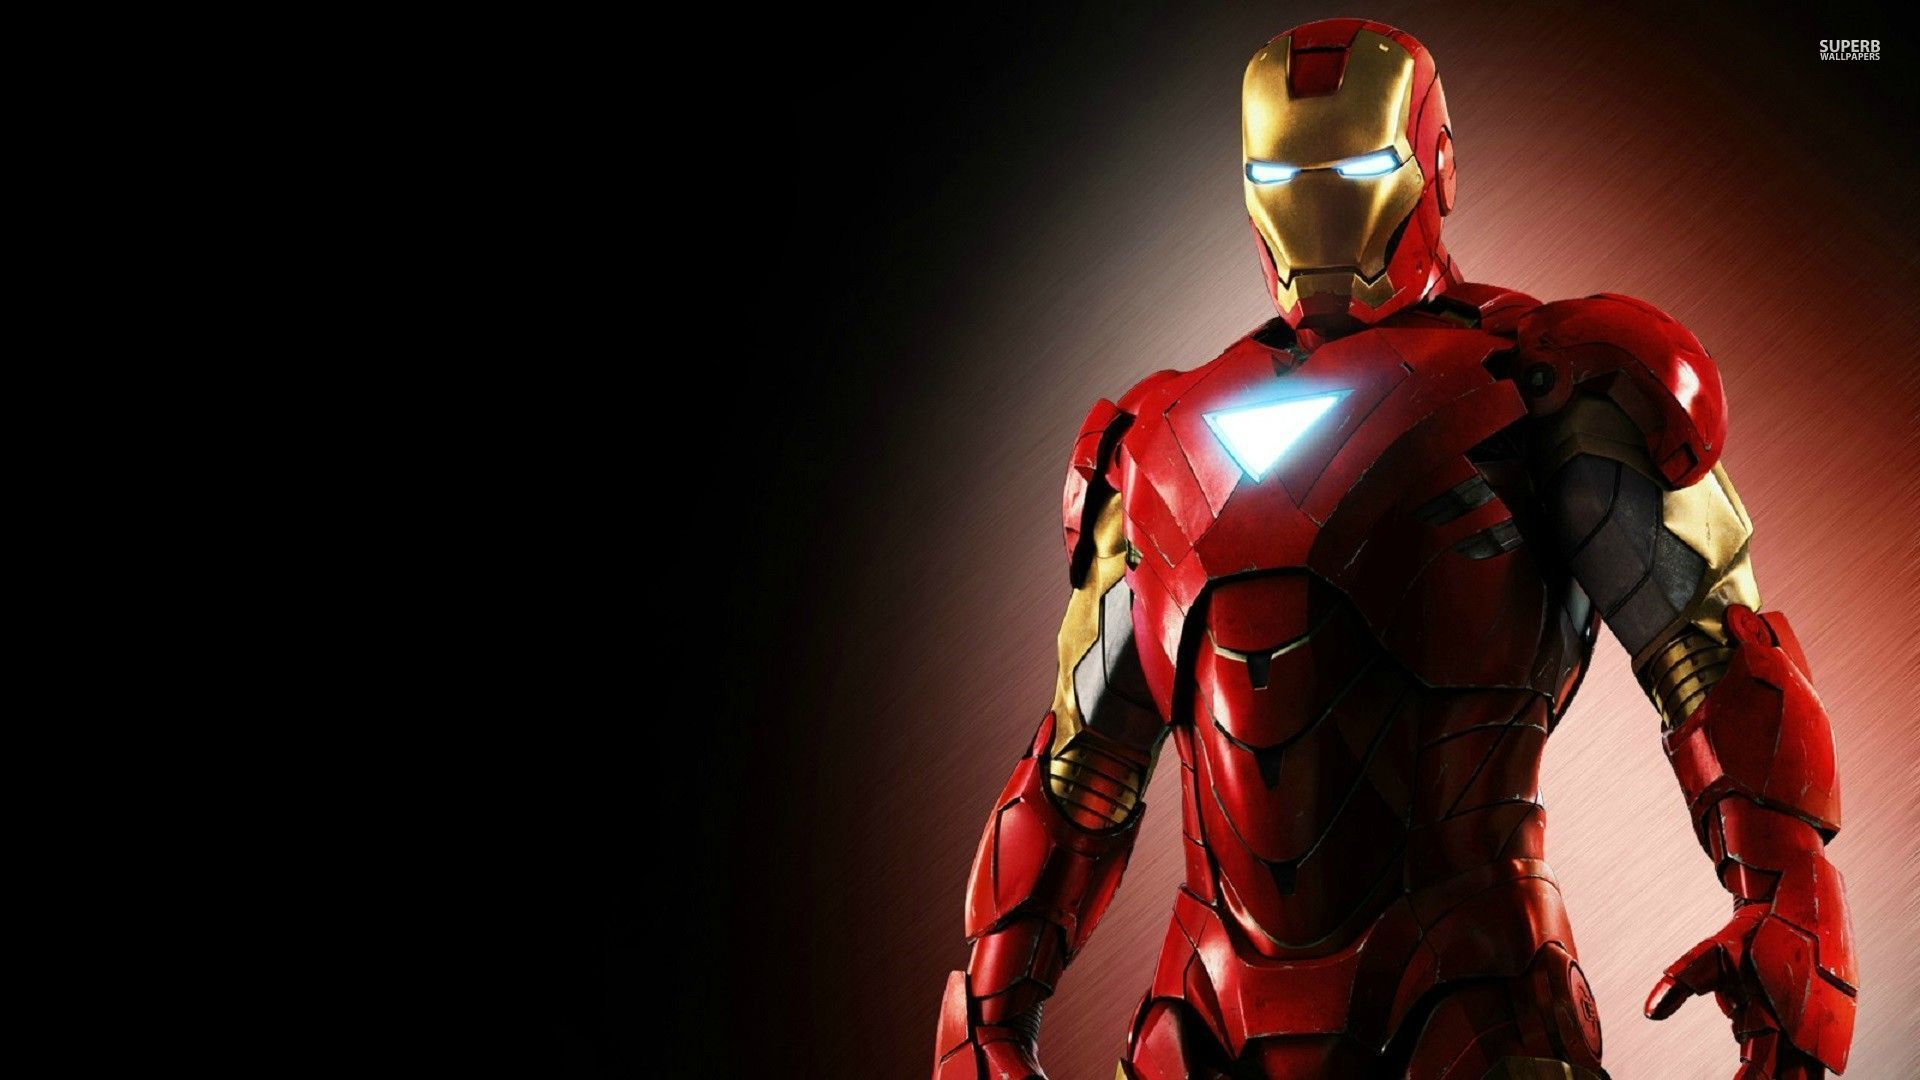 Iron Man wallpaper 1920x1080 jpg